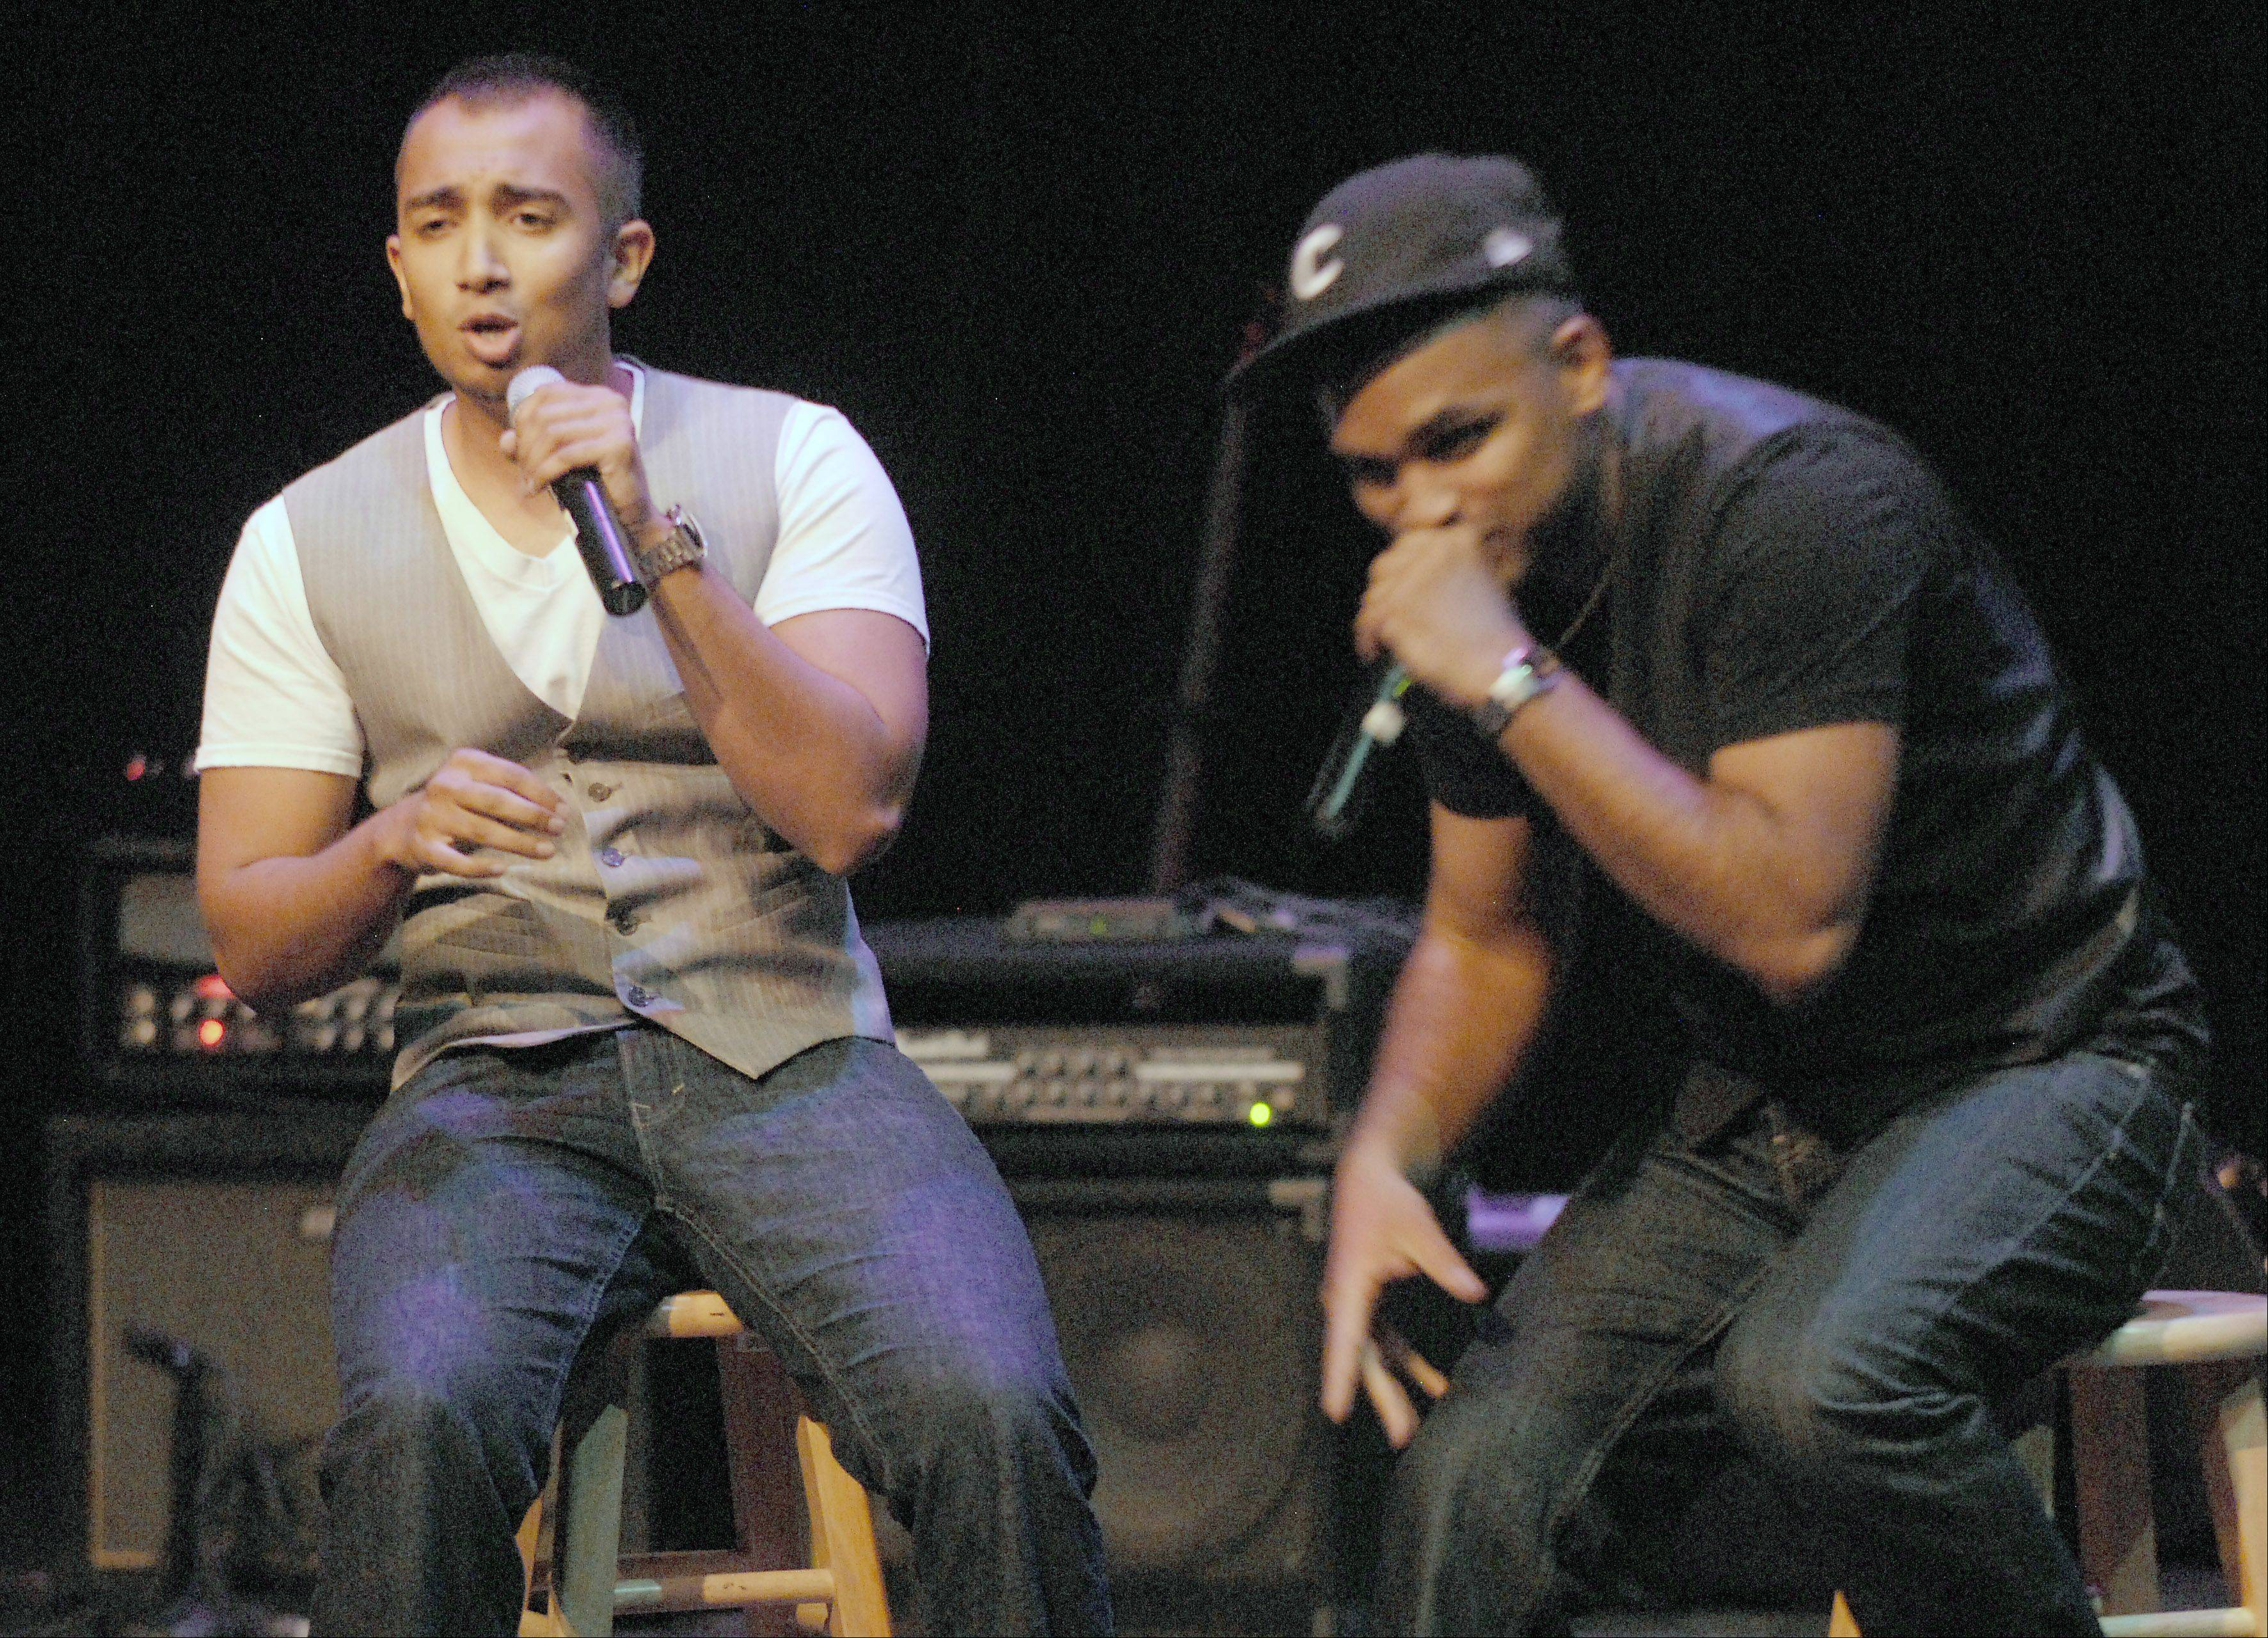 iLLest Vocals featuring Sanu John,25, of Skokie and Shawn Kurian, 25, of Wheeling were named the winners of Suburban Chicago's Got Talent.